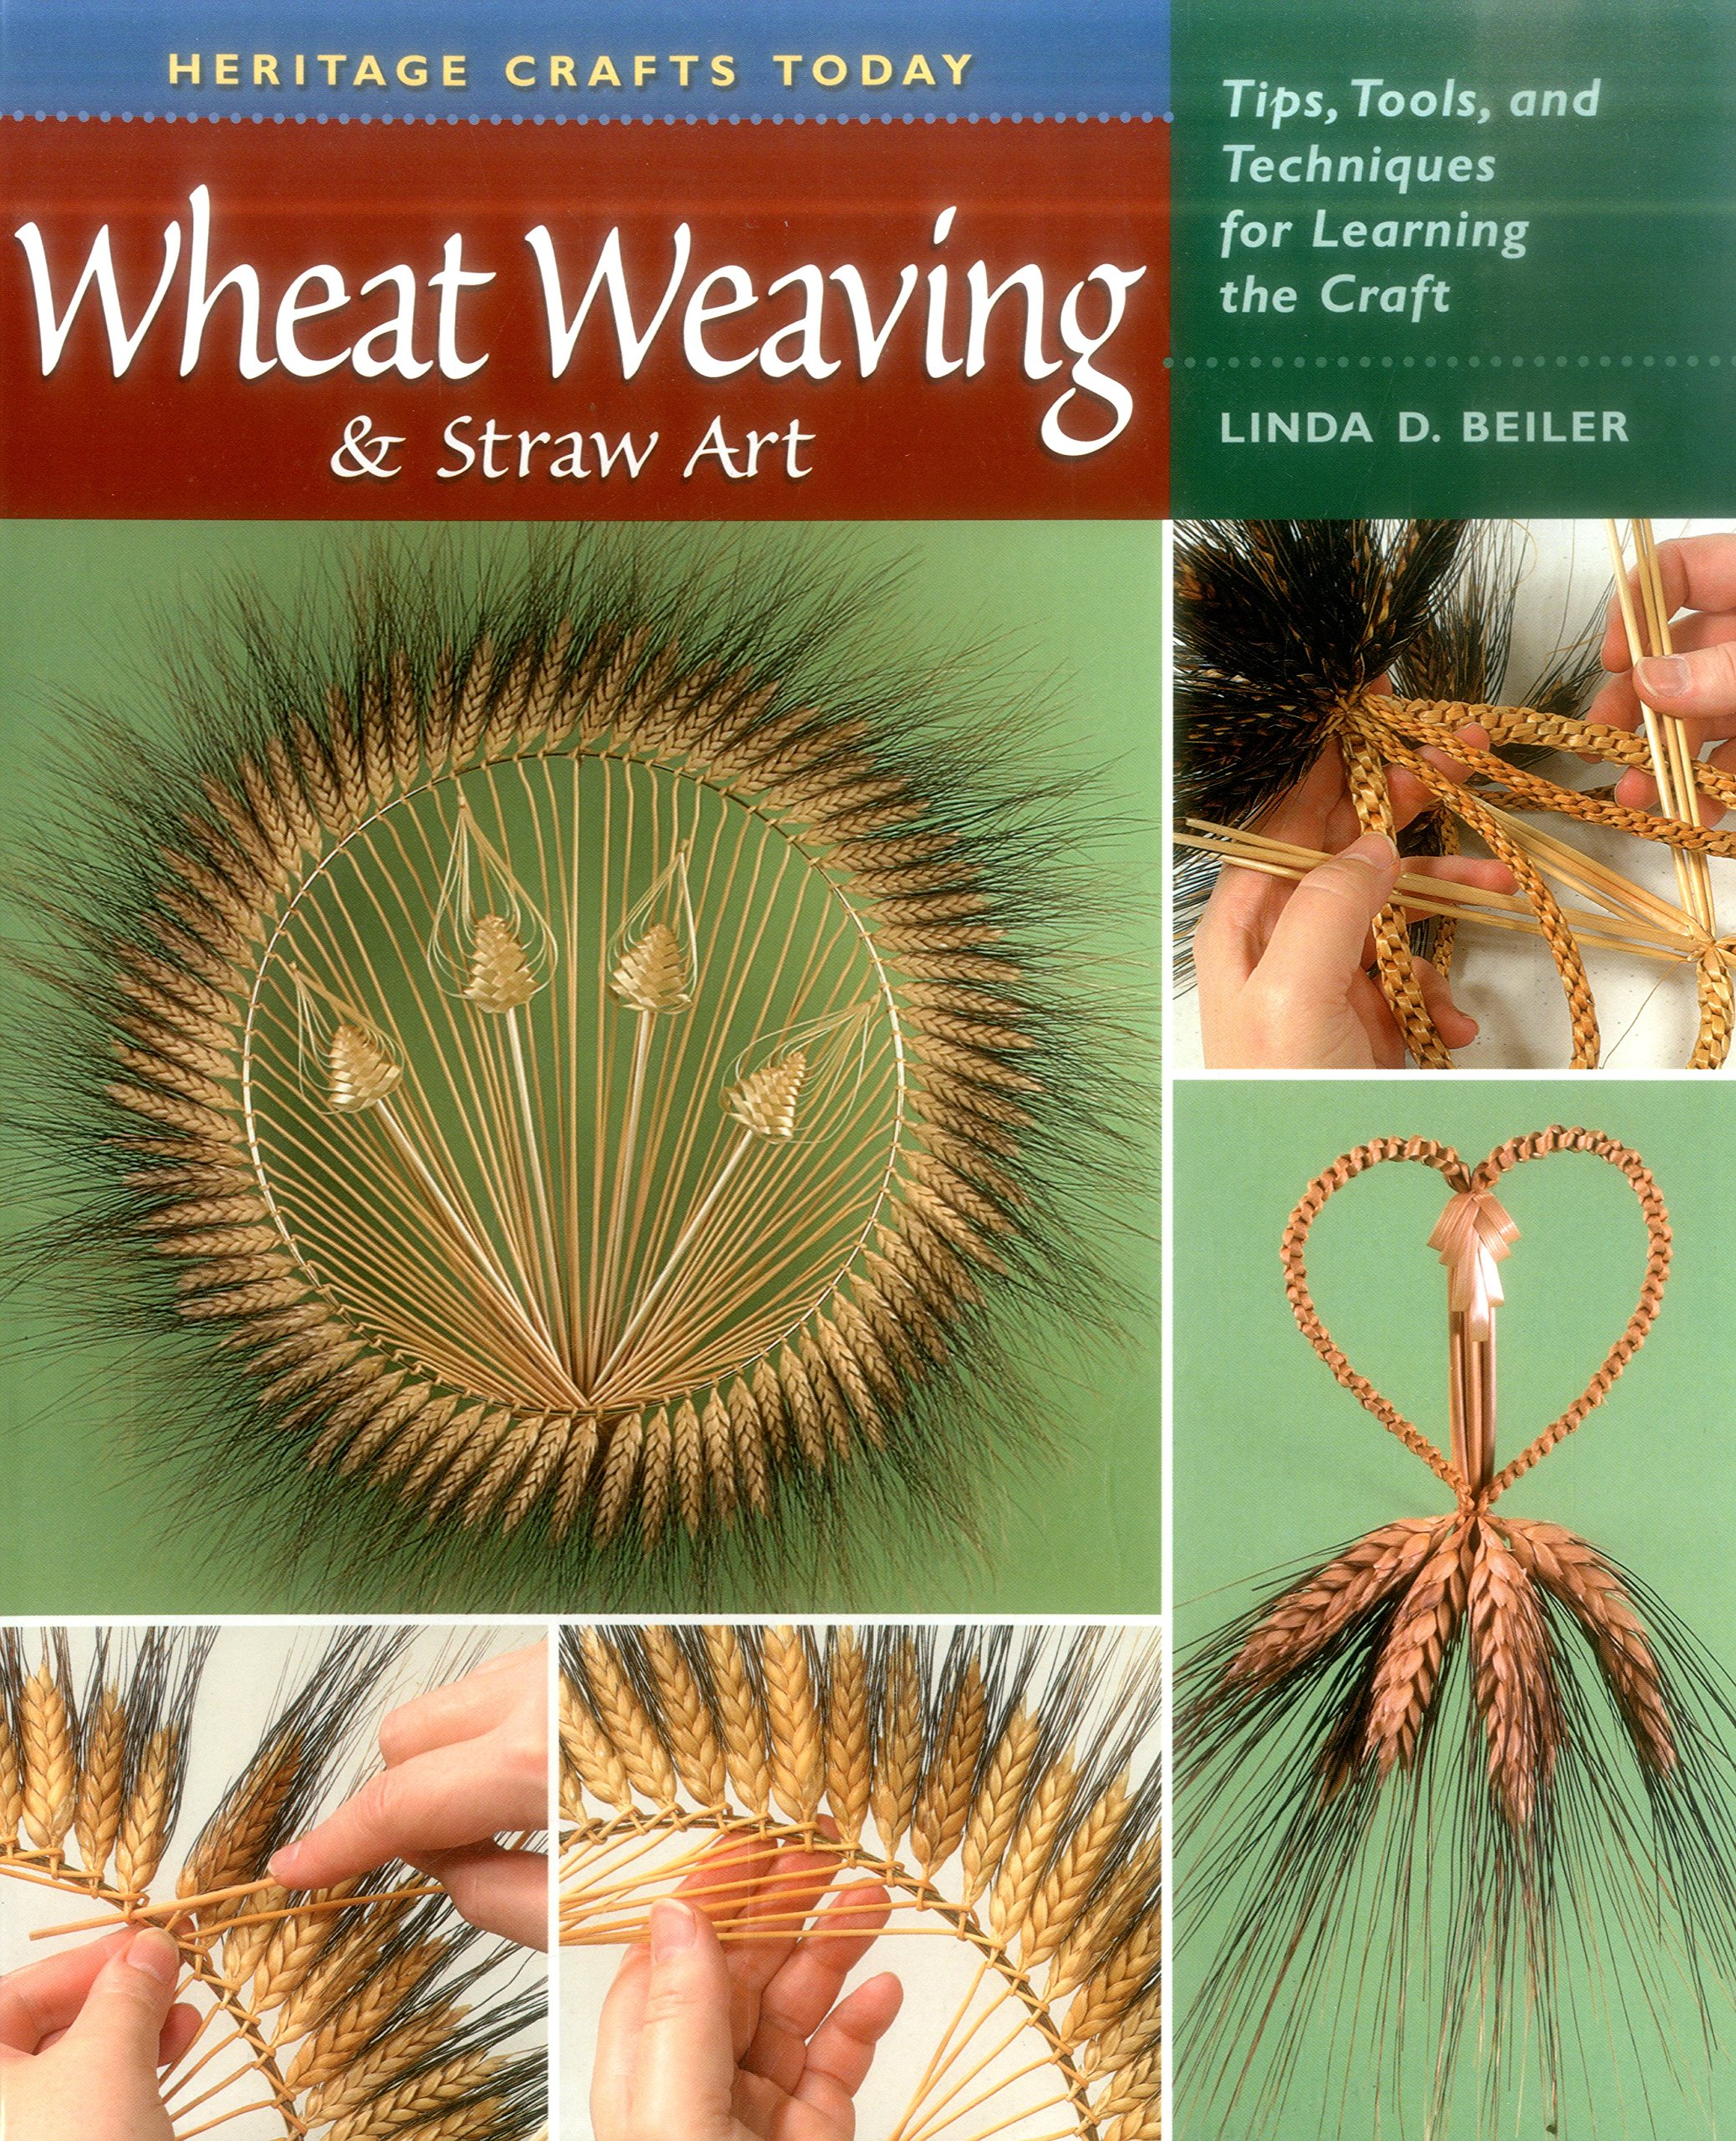 Wheat Weaving And Straw Art Tips Tools And Techniques For